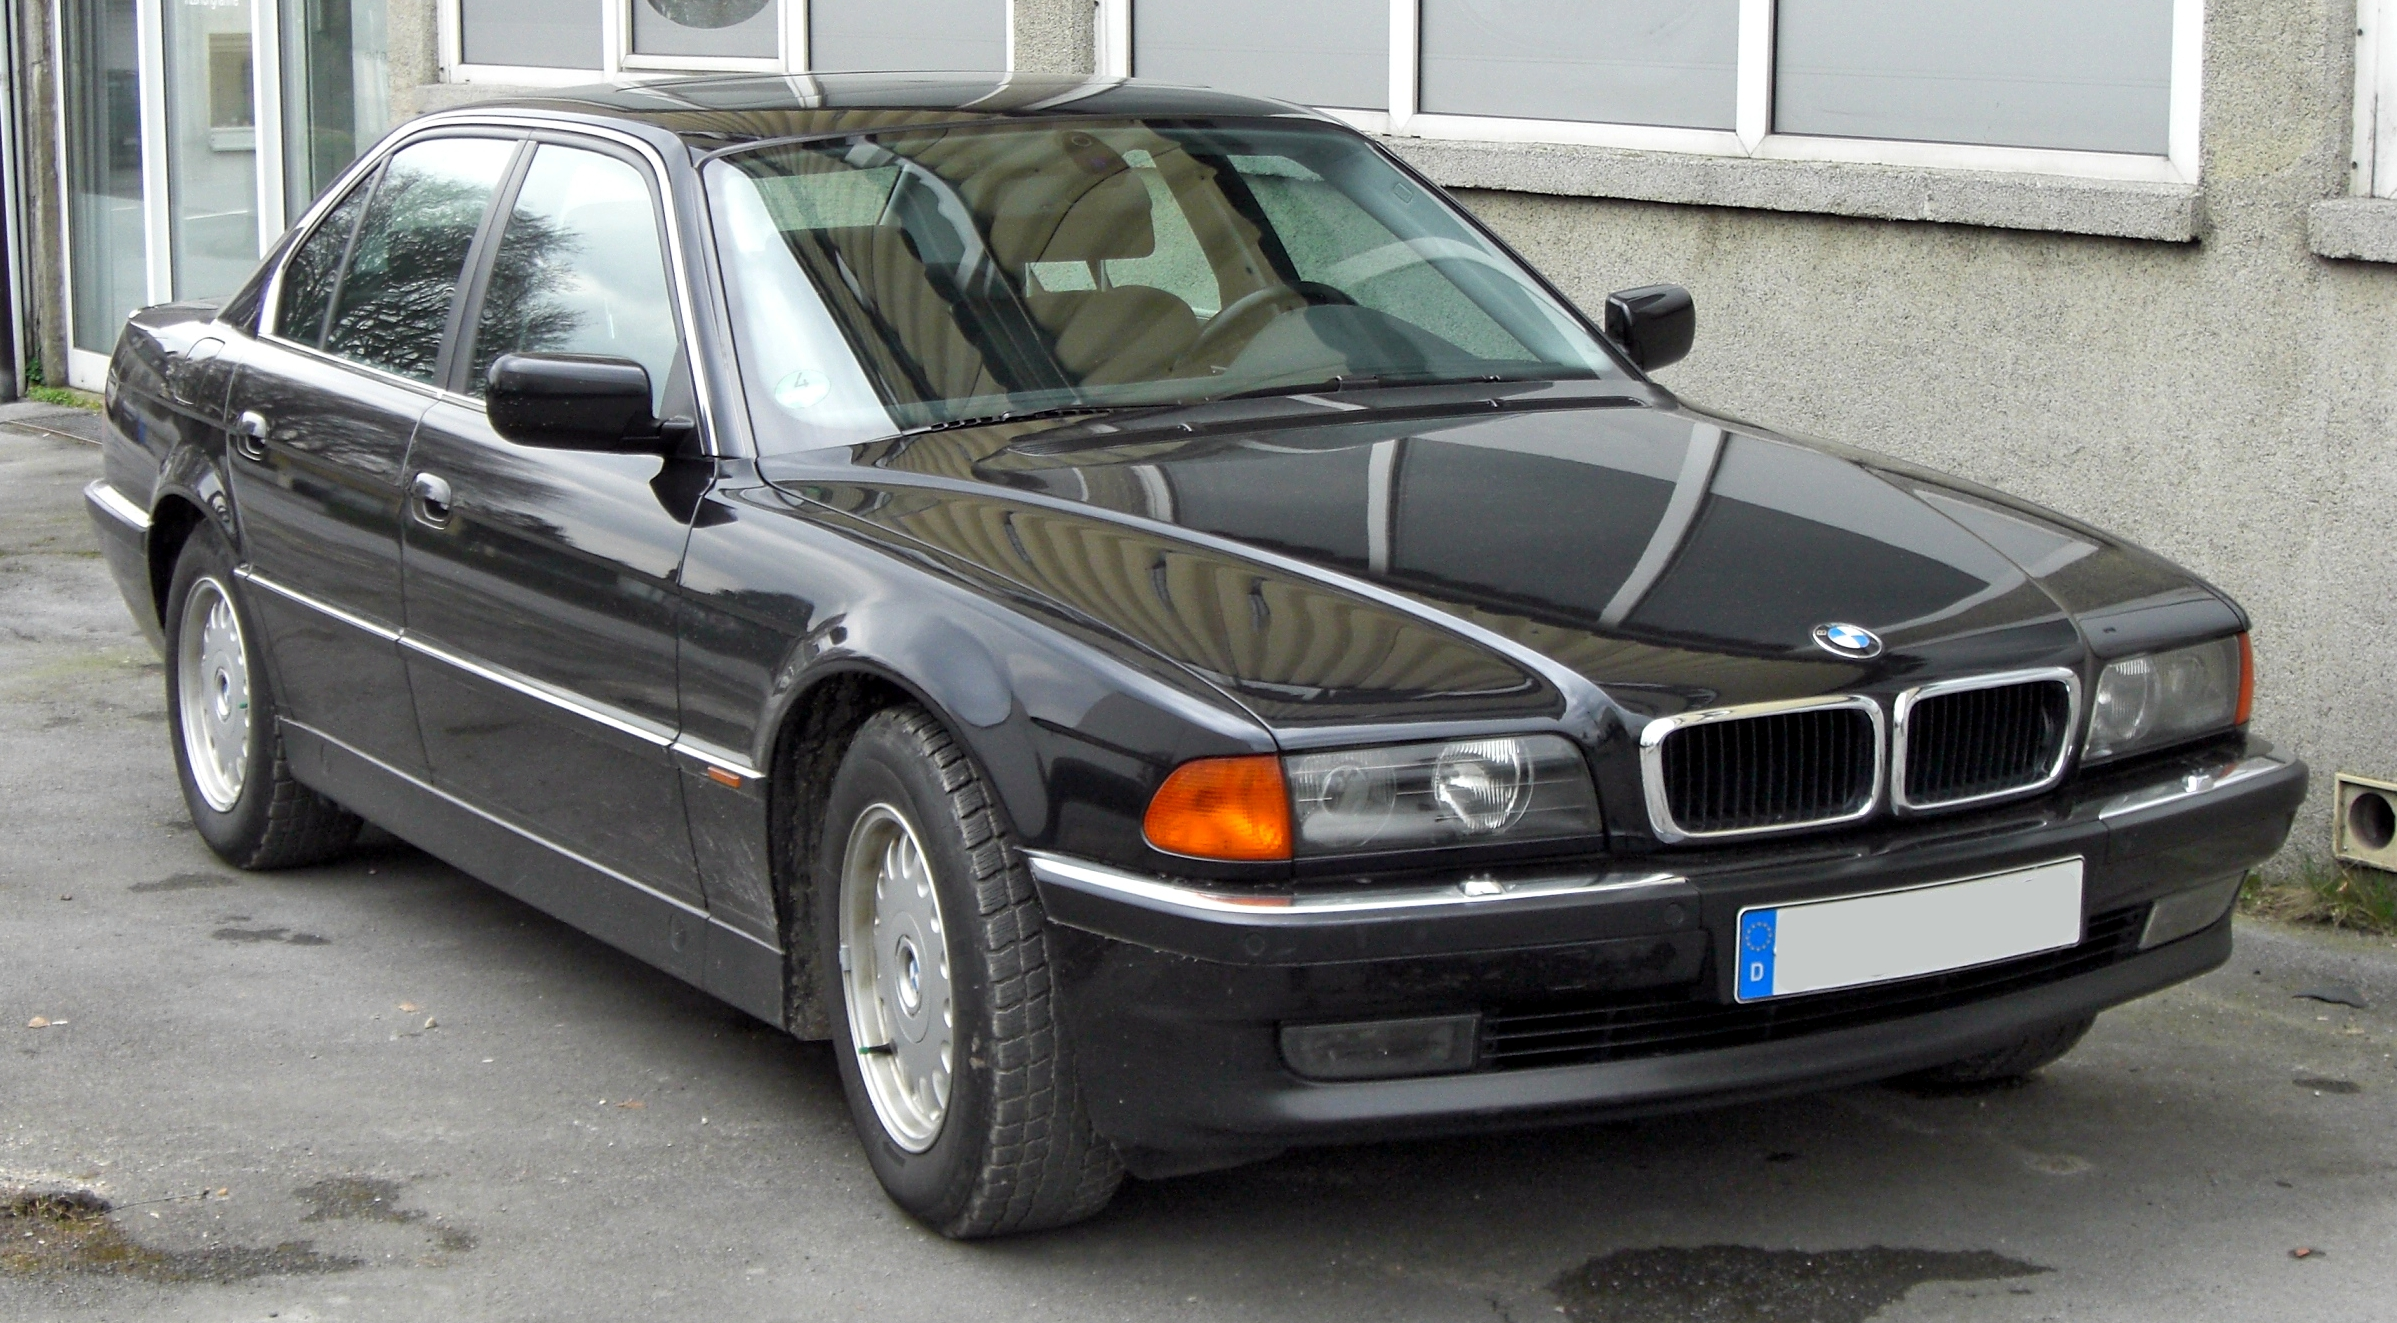 similiar 1999 bmw 740il engine diagram keywords 1999 bmw 740il engine diagram 1999 engine image for user manual